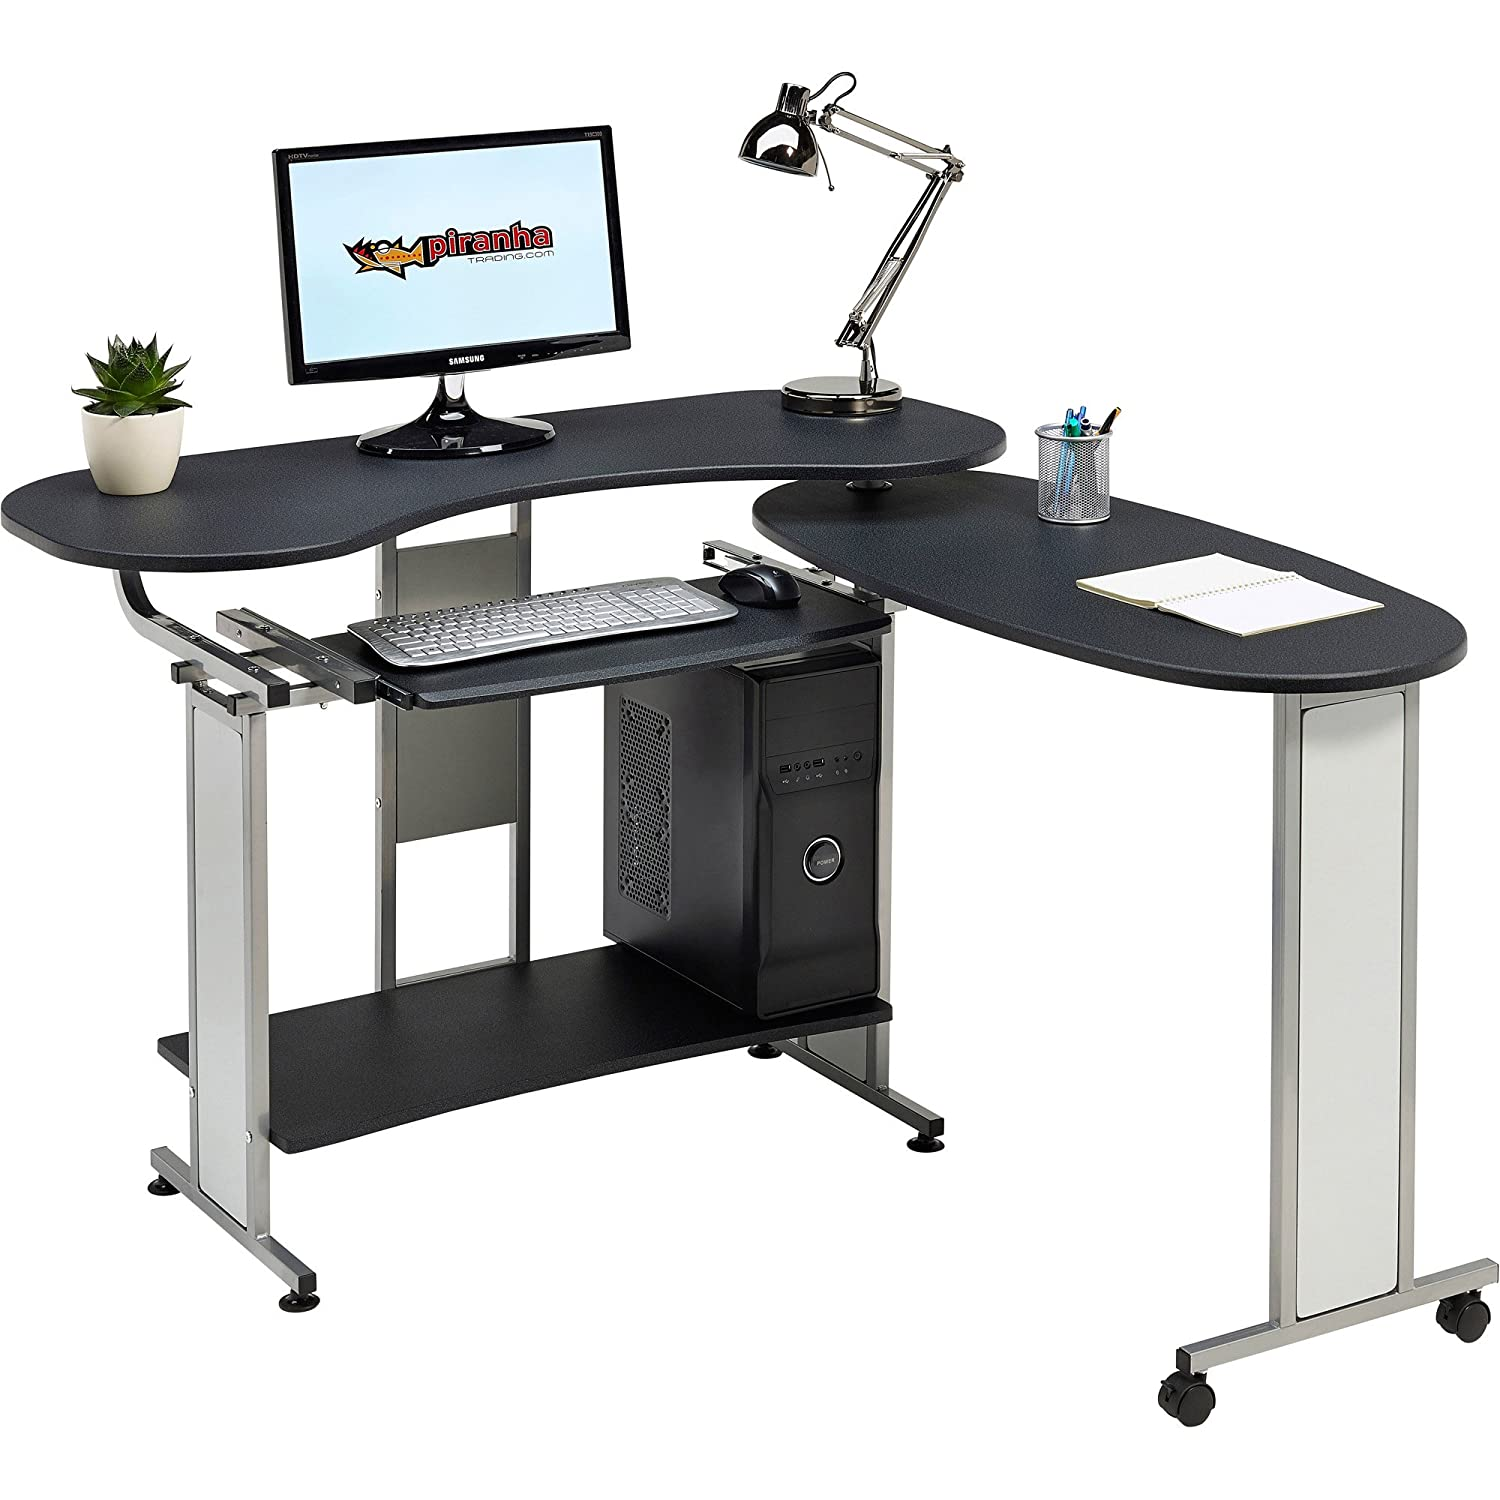 compact home office office. Compact Folding Computer And Writing Desk With Sliding Keyboard Shelf In Graphite Black Effect For Home Office - Piranha Mako PC 3g: Amazon.co.uk: Kitchen \u0026 A